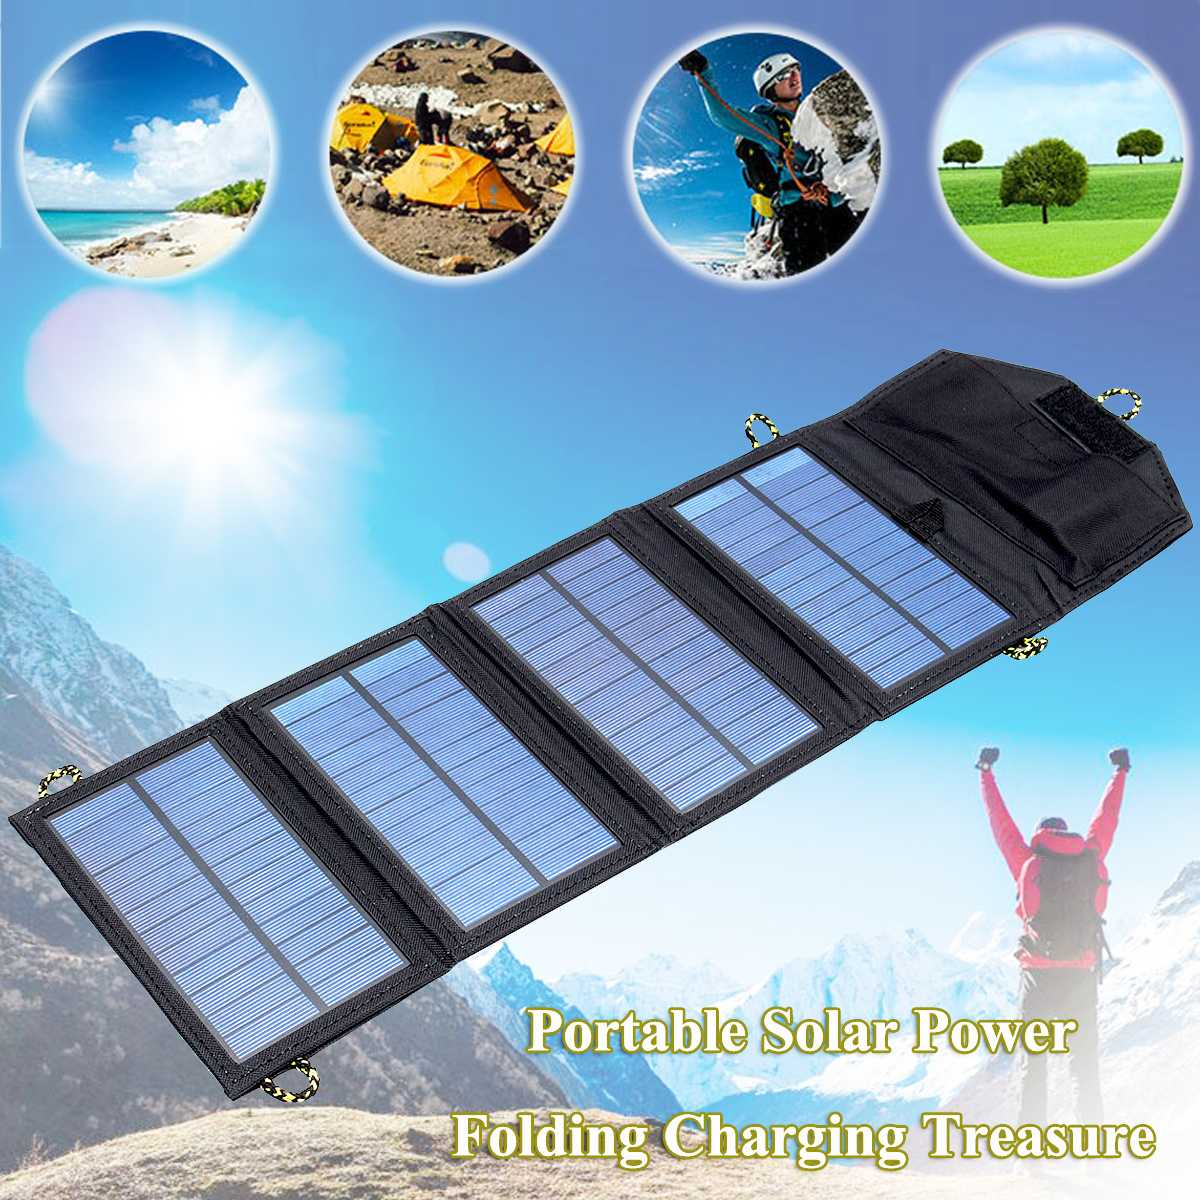 outdoor 7W 5V Portable Folding Solar panel USB Charger Charging for phone Camping hiking climbing cycling equipment tools|charger charging|charger charger|charger for phone - title=